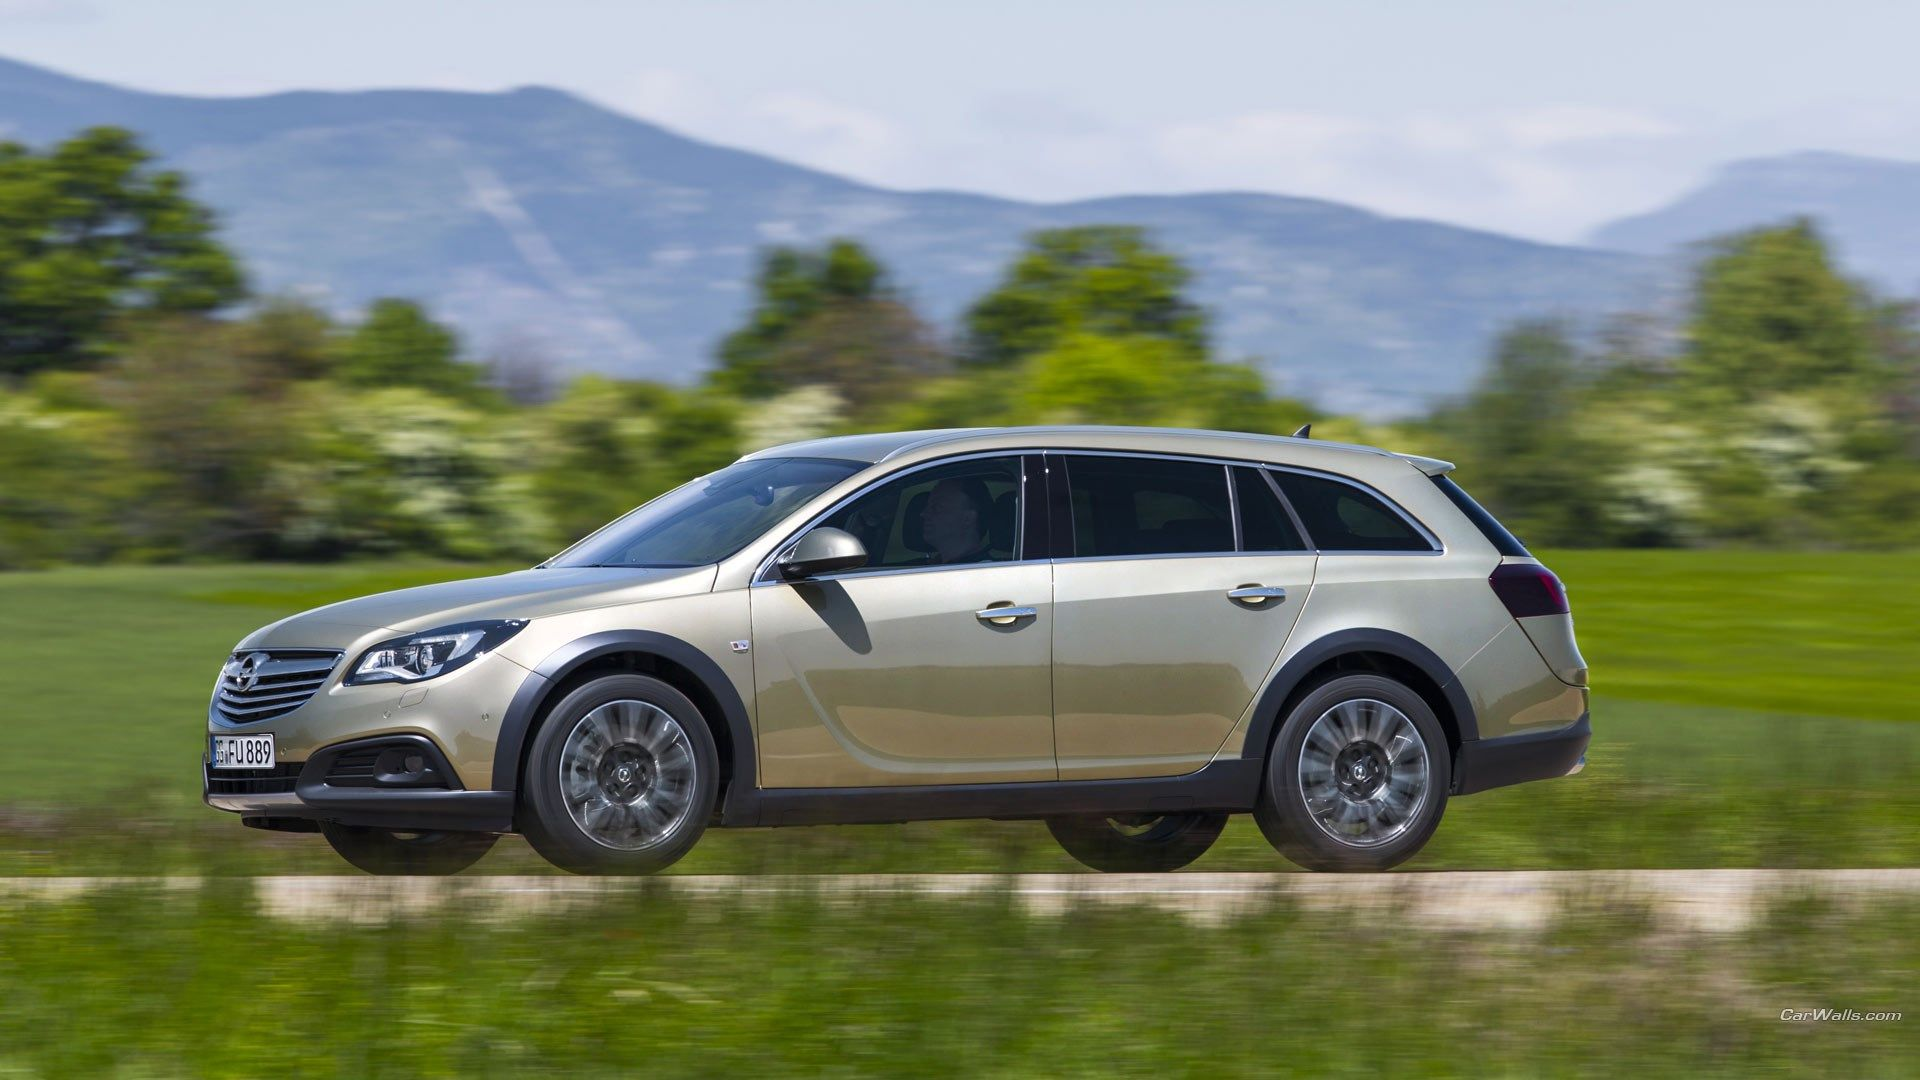 Ceylon Ross 2014 opel insignia country tourer image for